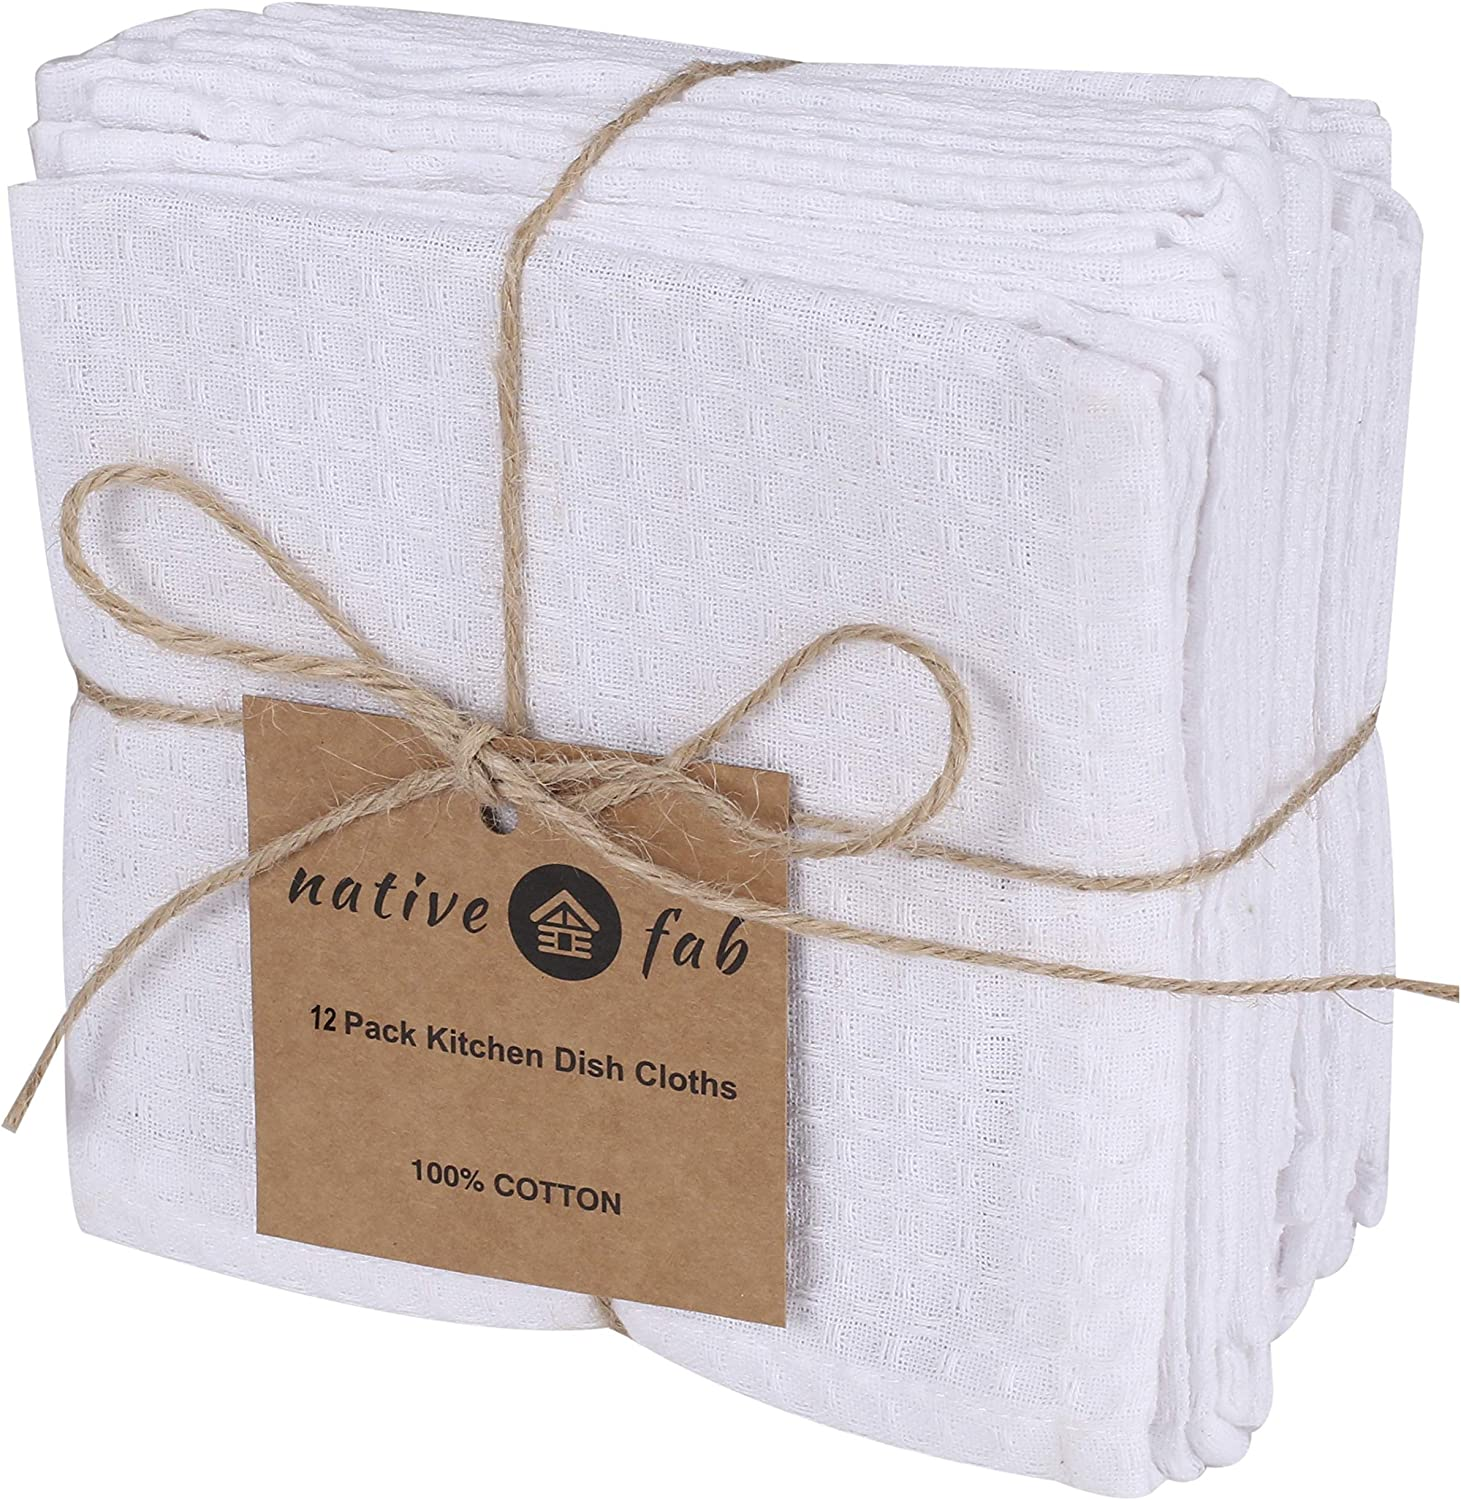 Native Fab Waffle 12 Pack Kitchen Dish Cloths Cotton 12x12 Absorbent Washable, Dish Towels, Restaurant Cleaning Towels, Bar Mops Towels, Rags for Home Kitchen Bars, White